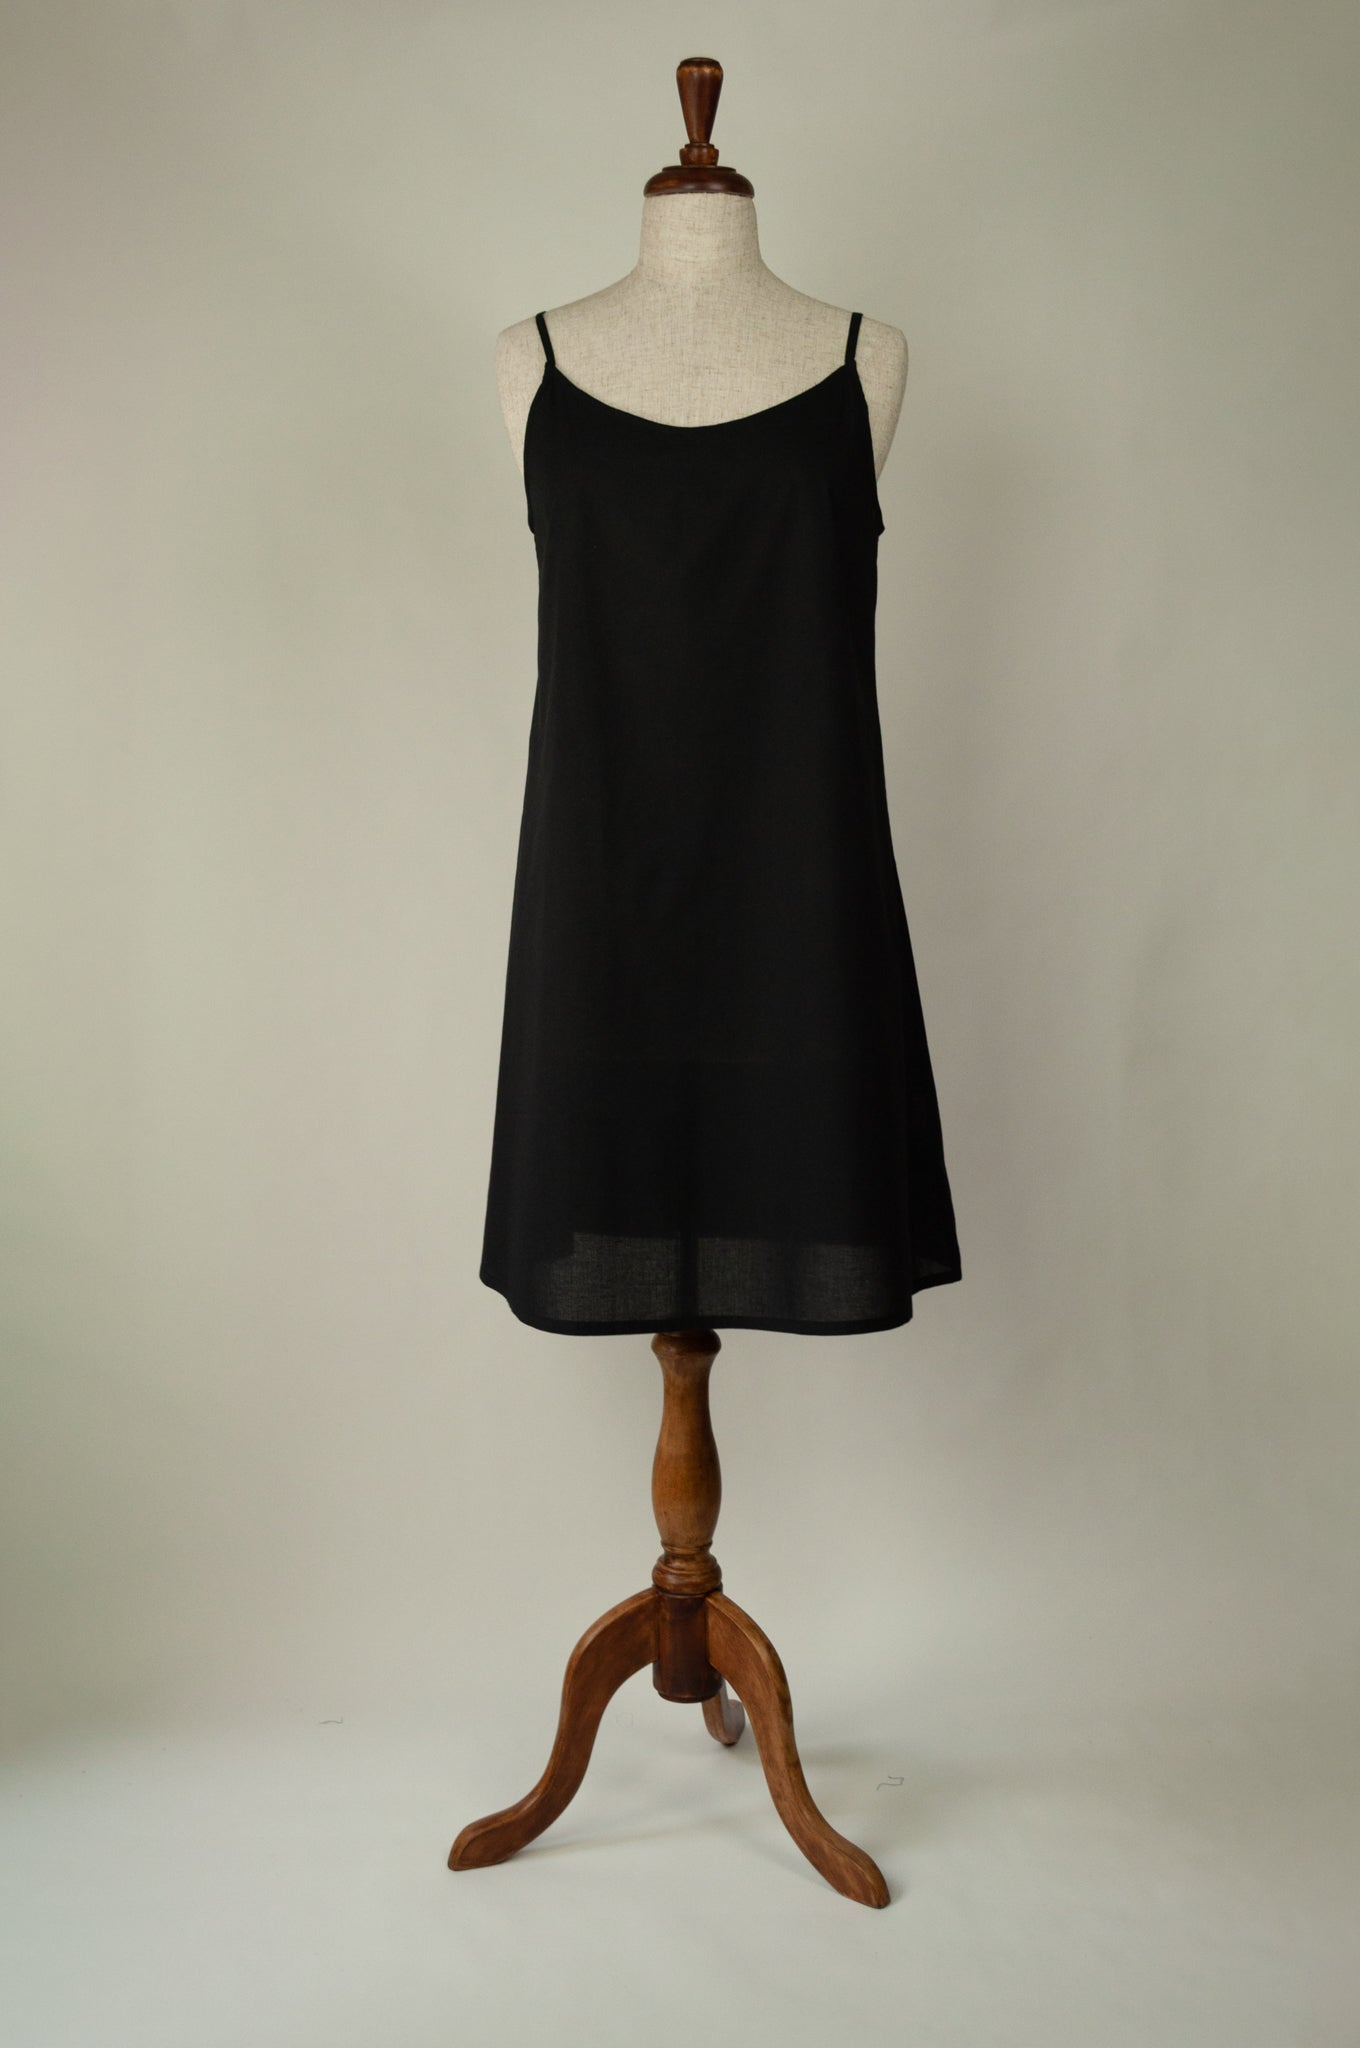 Ladies pure cotton voile full slip or petticoat with adjustable straps in black.